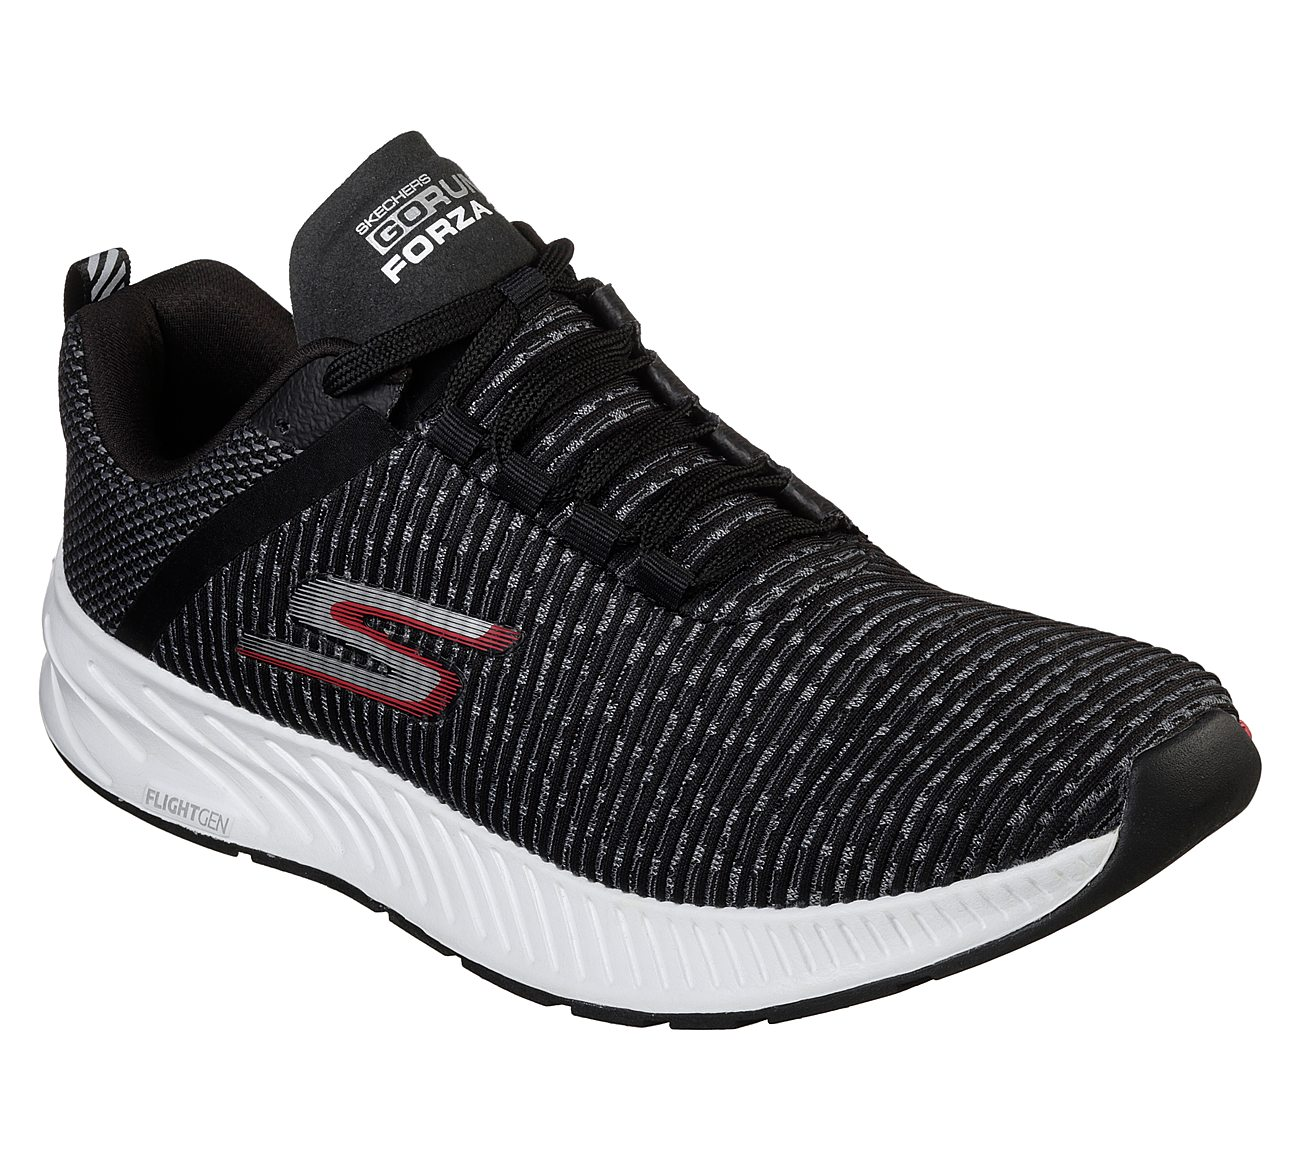 48b87c7d Buy SKECHERS Skechers GOrun Forza 3 Skechers Performance Shoes only ...